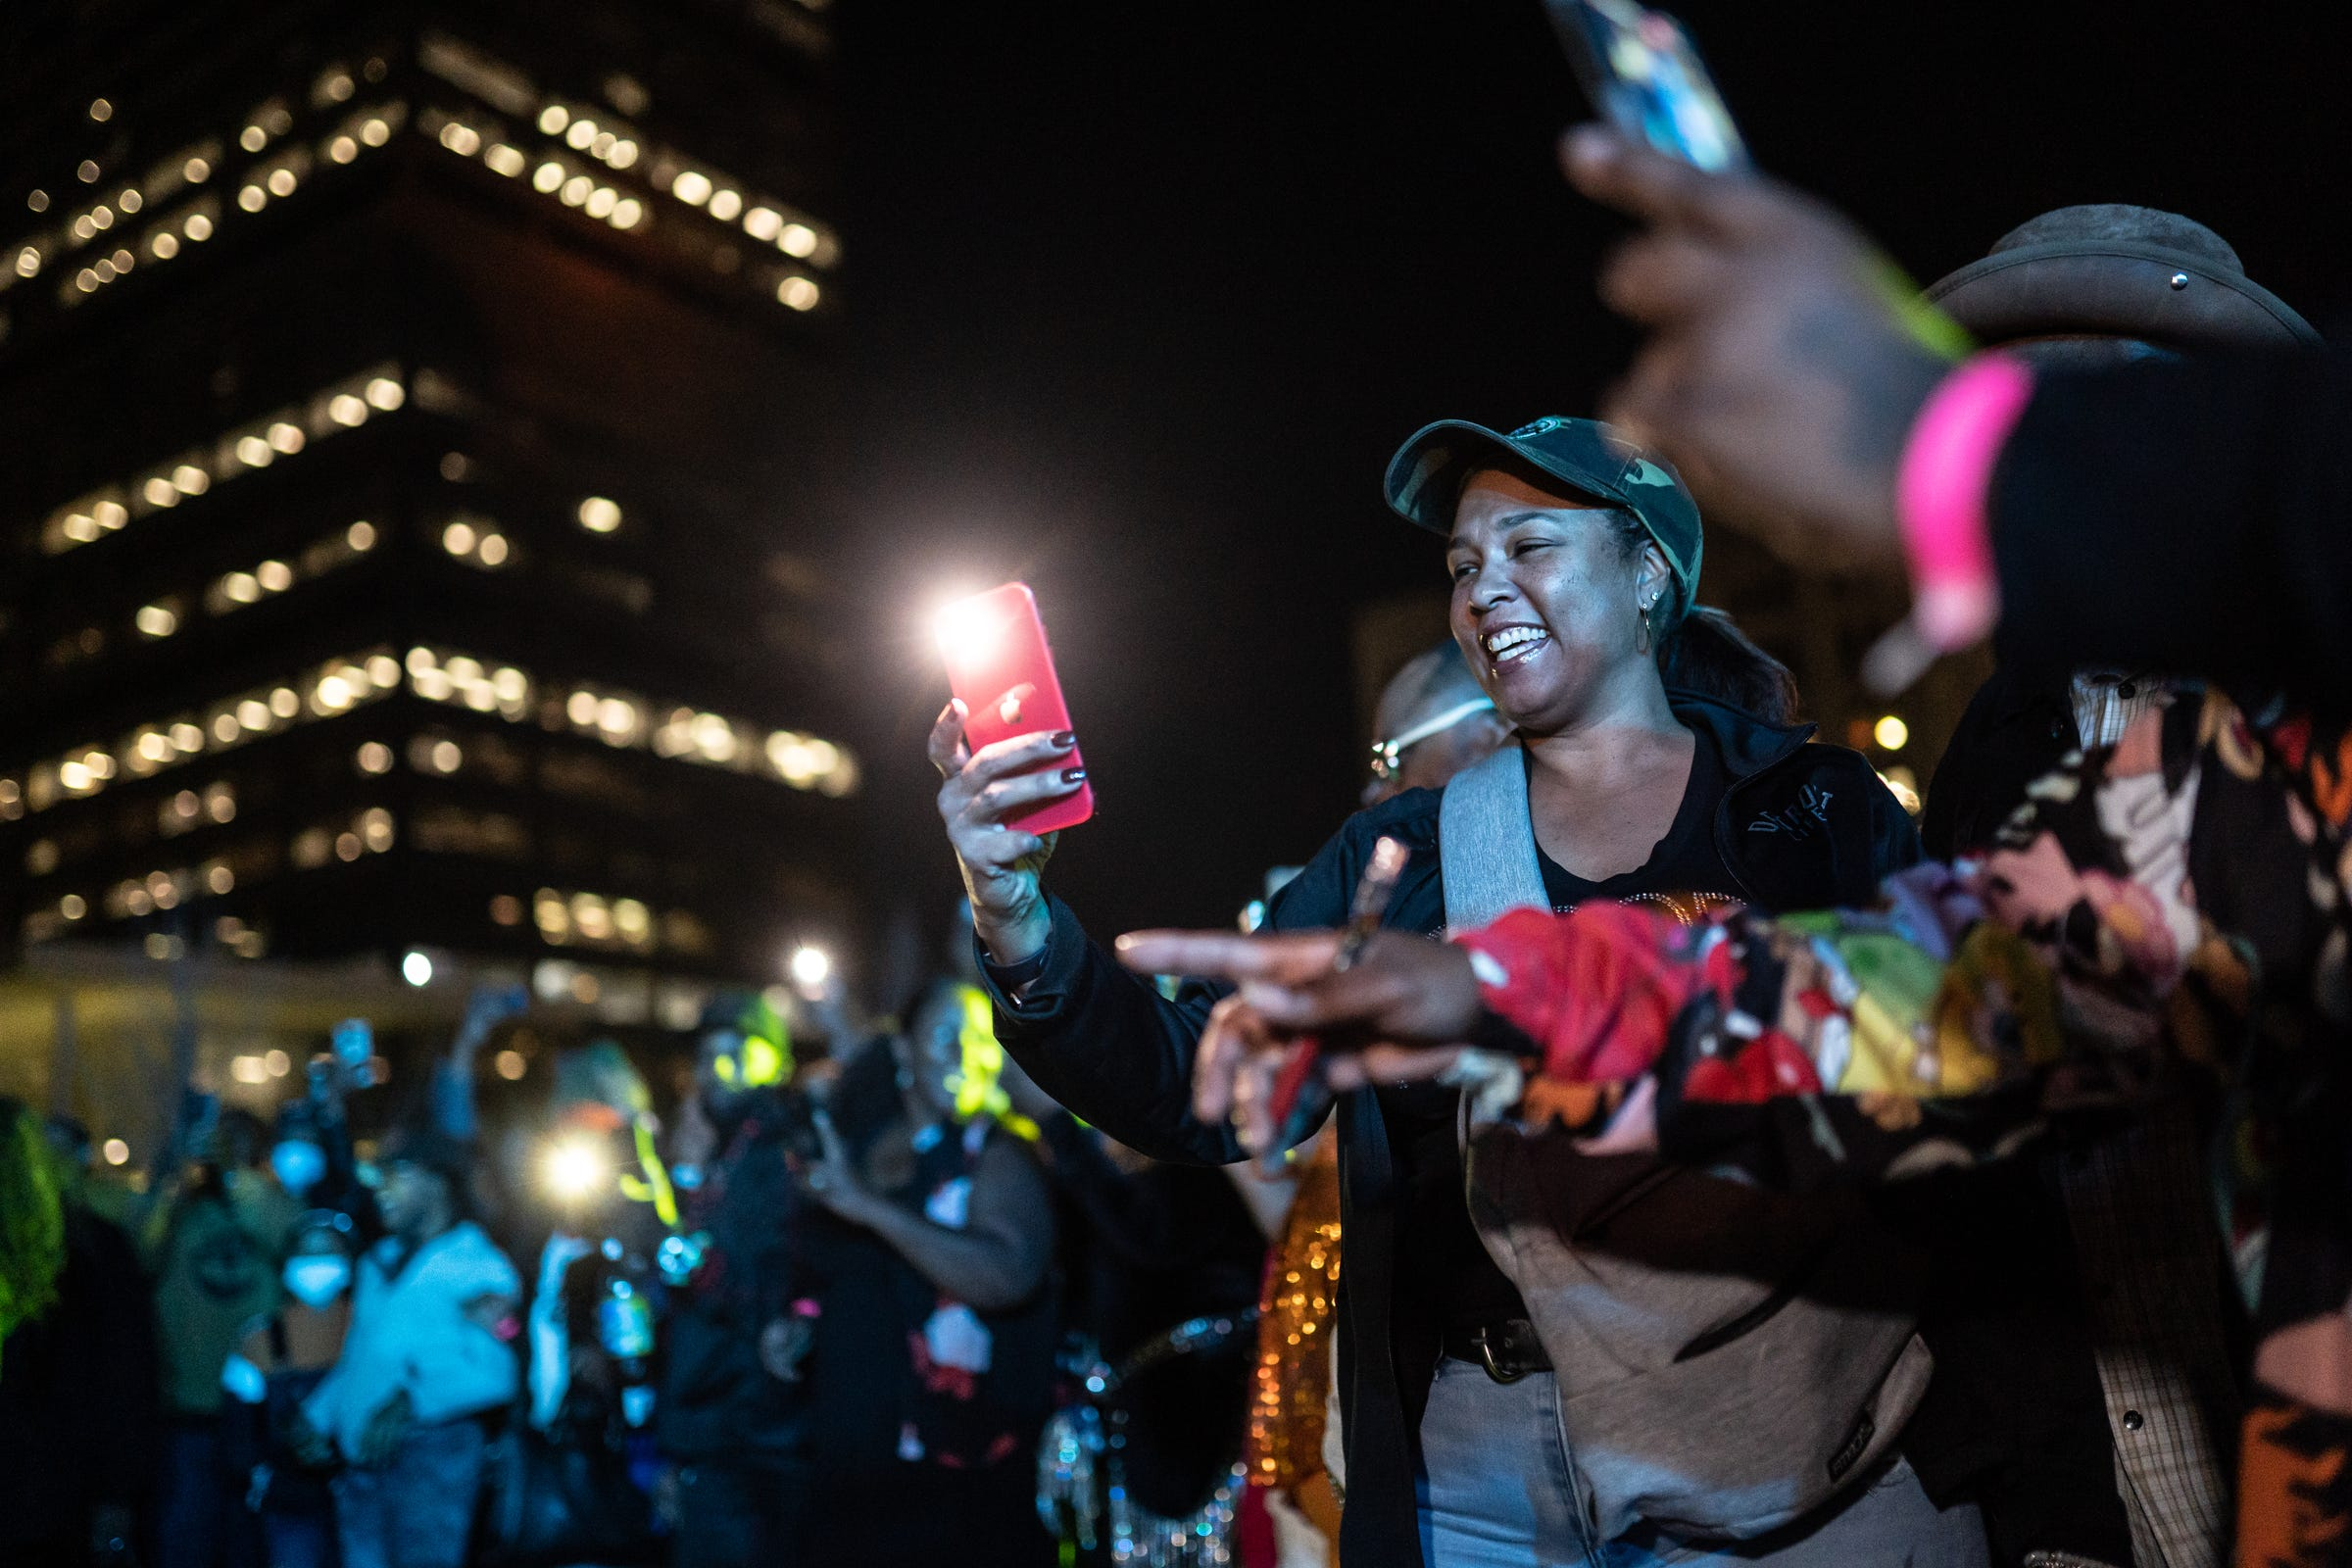 """The crowd surrounds as people get their 30 seconds to shine while performing during a dance line as part of """"The Scene with Nat Morris and Friends"""" as part of the DLECTRICITY event at Beacon Park in downtown Detroit on September 24, 2021. The event featured former dancers from Detroit's historic daily dance show that aired on WGPR TV, the first African-American owned and operated television station licensed by the FCC in The United States from 1975-1987, taking part in an open dance floor. The Scene looked to attempt Detroit's longest dance line giving each dancer 30 seconds to keep it moving."""